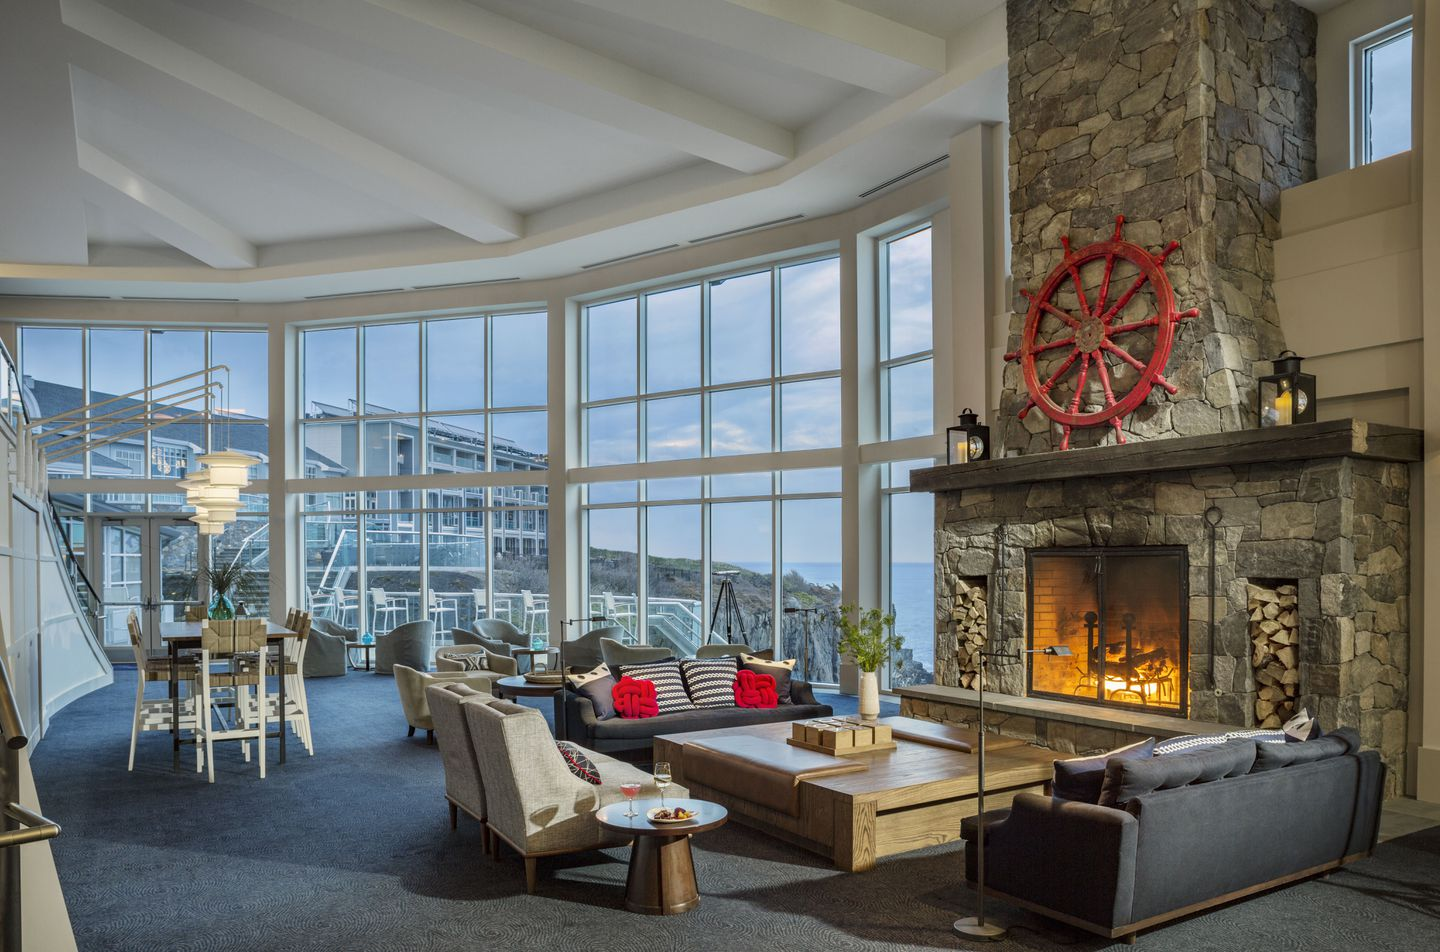 Seven New England Inns Where You Can Enjoy Luxury For Less In The